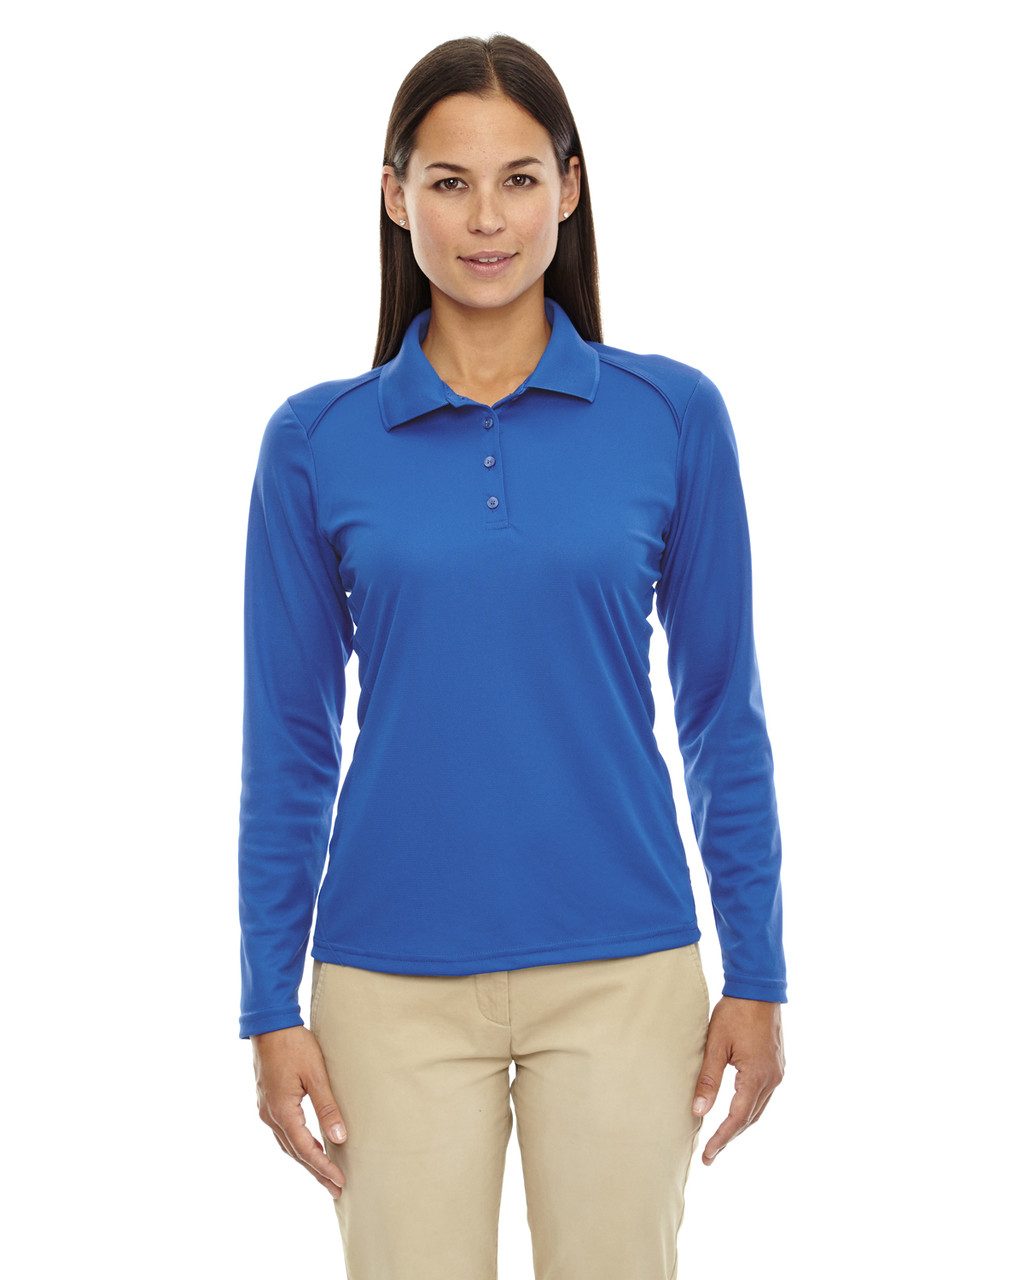 True Royal 75111 Ash City - Extreme Eperformance Ladies' Long-Sleeve Polo Shirt